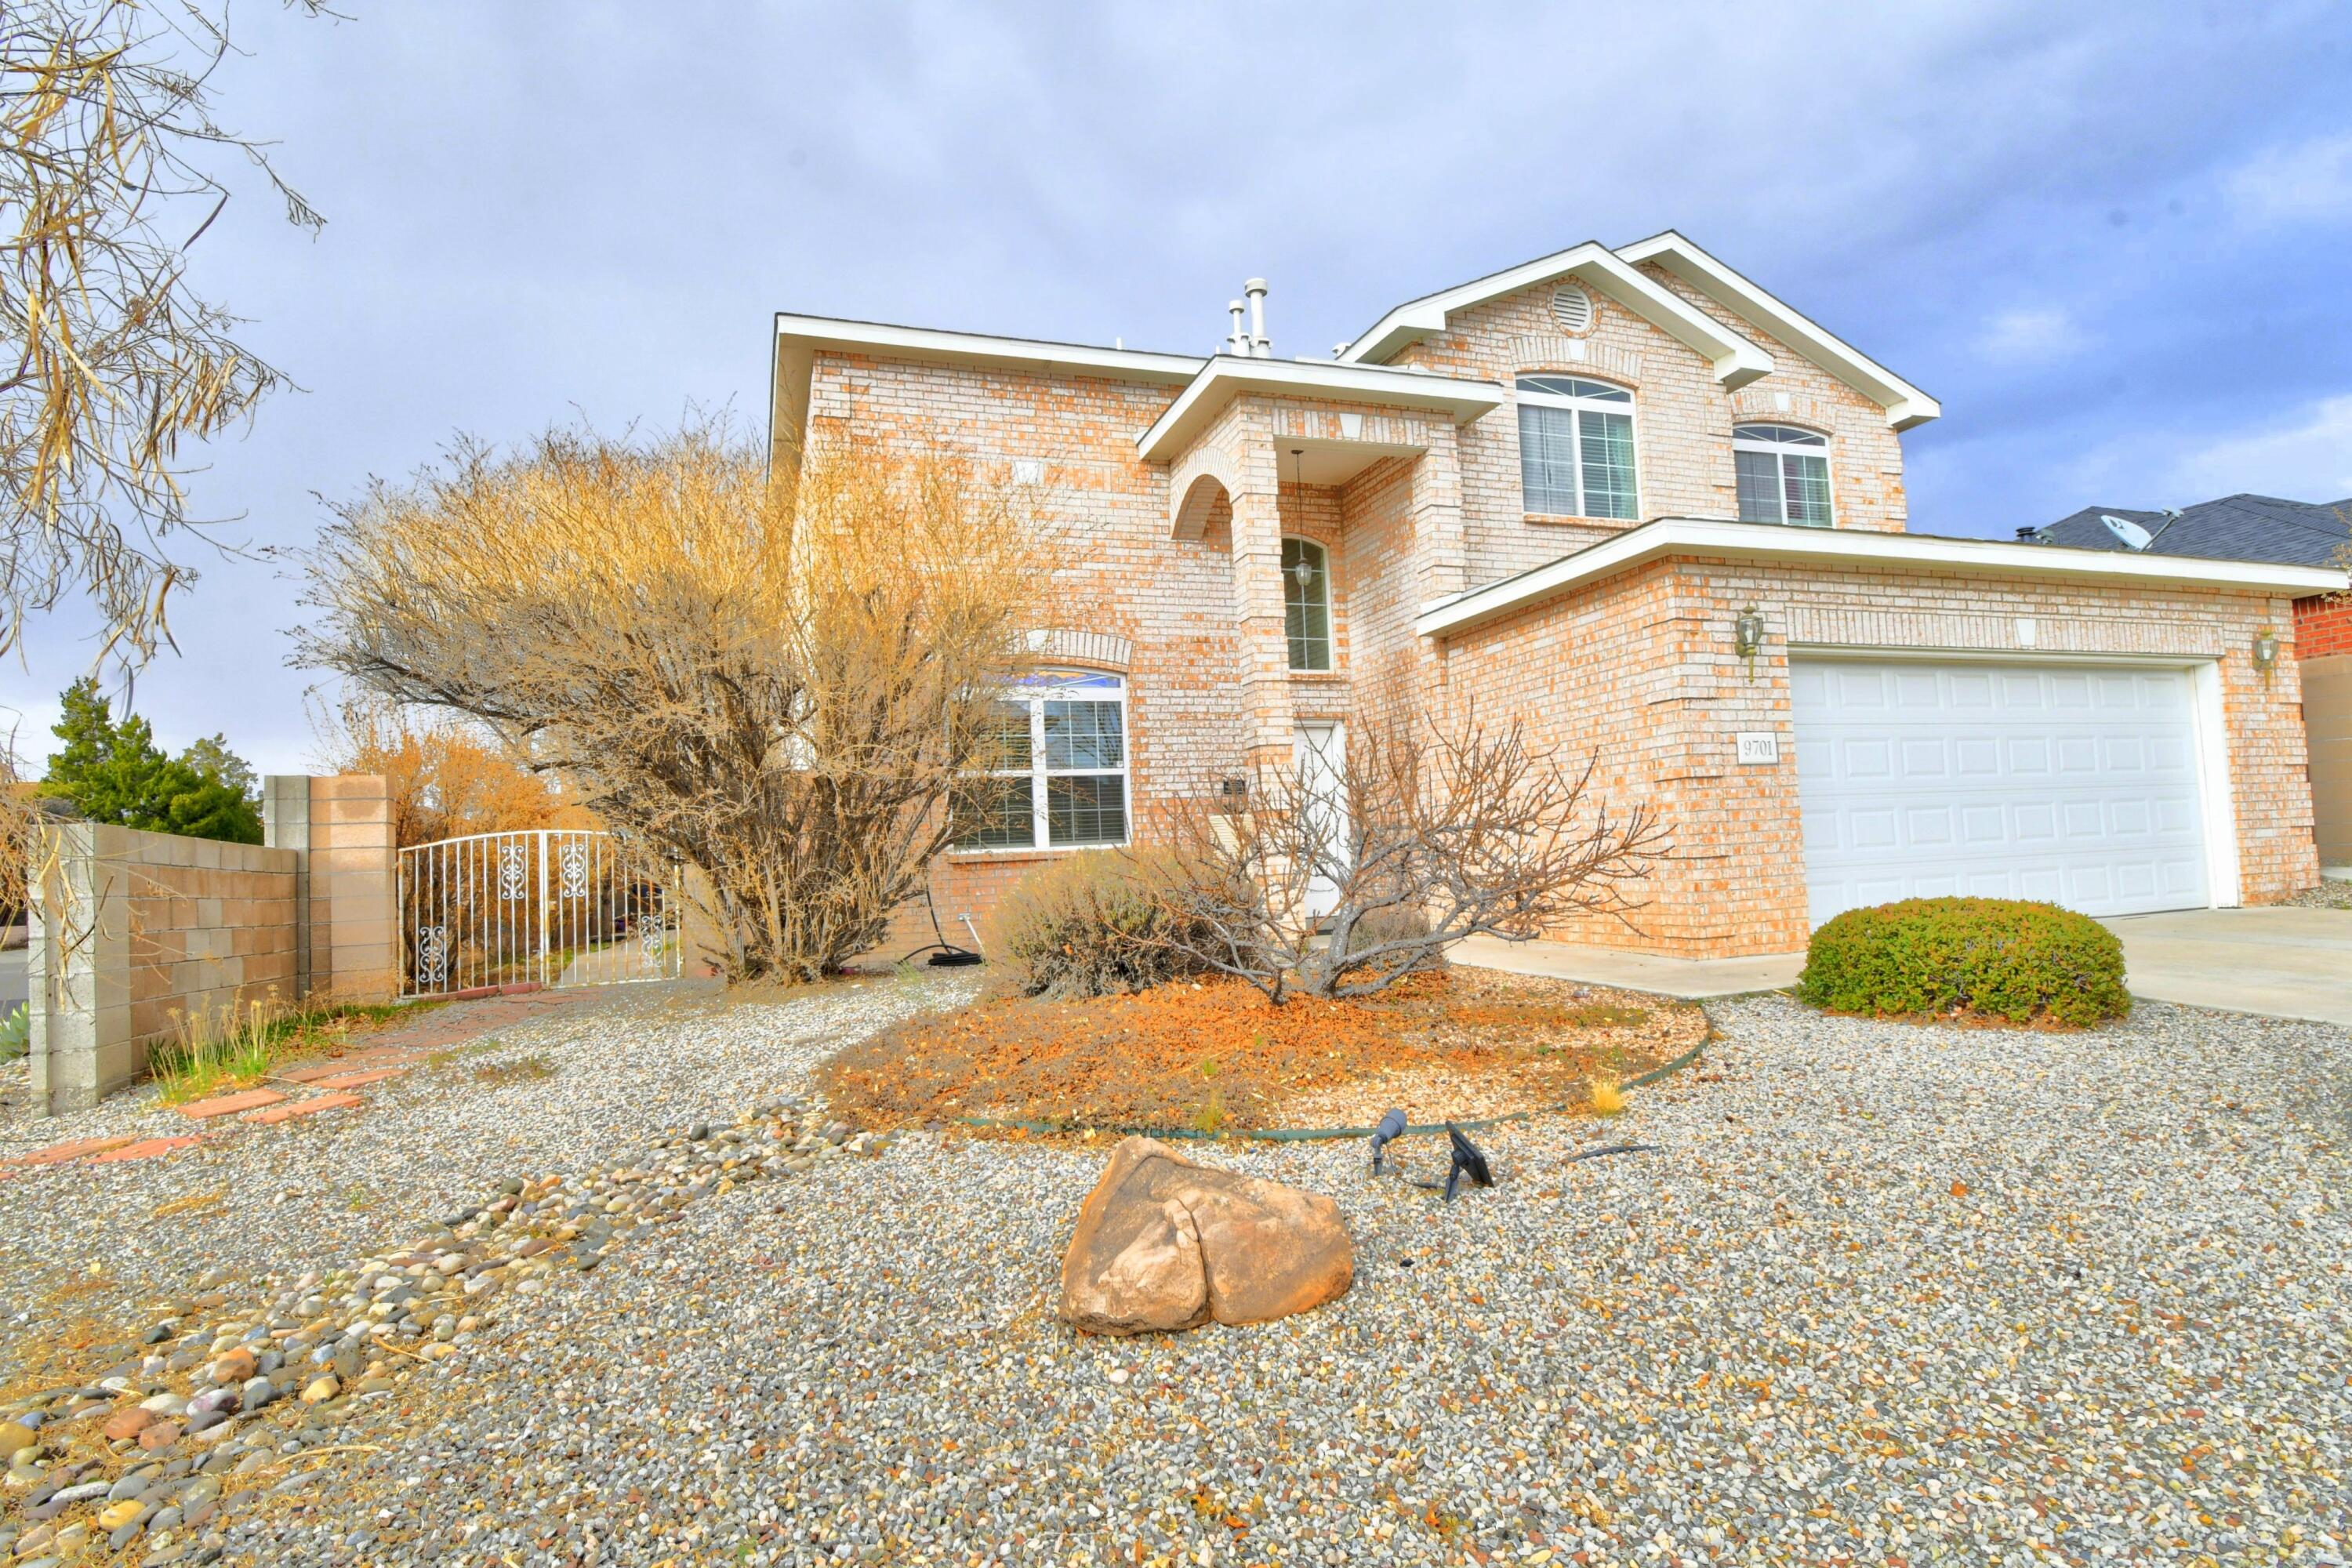 This fabulous home has beautiful Mountain Views. Enjoy the ambience soaring ceilings & fireplace in the family room. The open kitchen has a breakfast nook, island, large pantry, & double ovens  for the chef. There is also a formal dining room, living room and loft to meet all of your needs. The extra large 5th bedroom is downstairs that affords multiple uses! Upstairs there are 3 good sized bedrooms, spacious loft & a large master suite. The master suite has breath taking views, a walk in closet, double sinks, jetted tub, linen closet & separate shower. This home has refrigerated air and radiant heat. Close to parks, trails, shopping and dining.Please give a 24 hour notice for showings. It is tenant occupied until July 31, 2021.